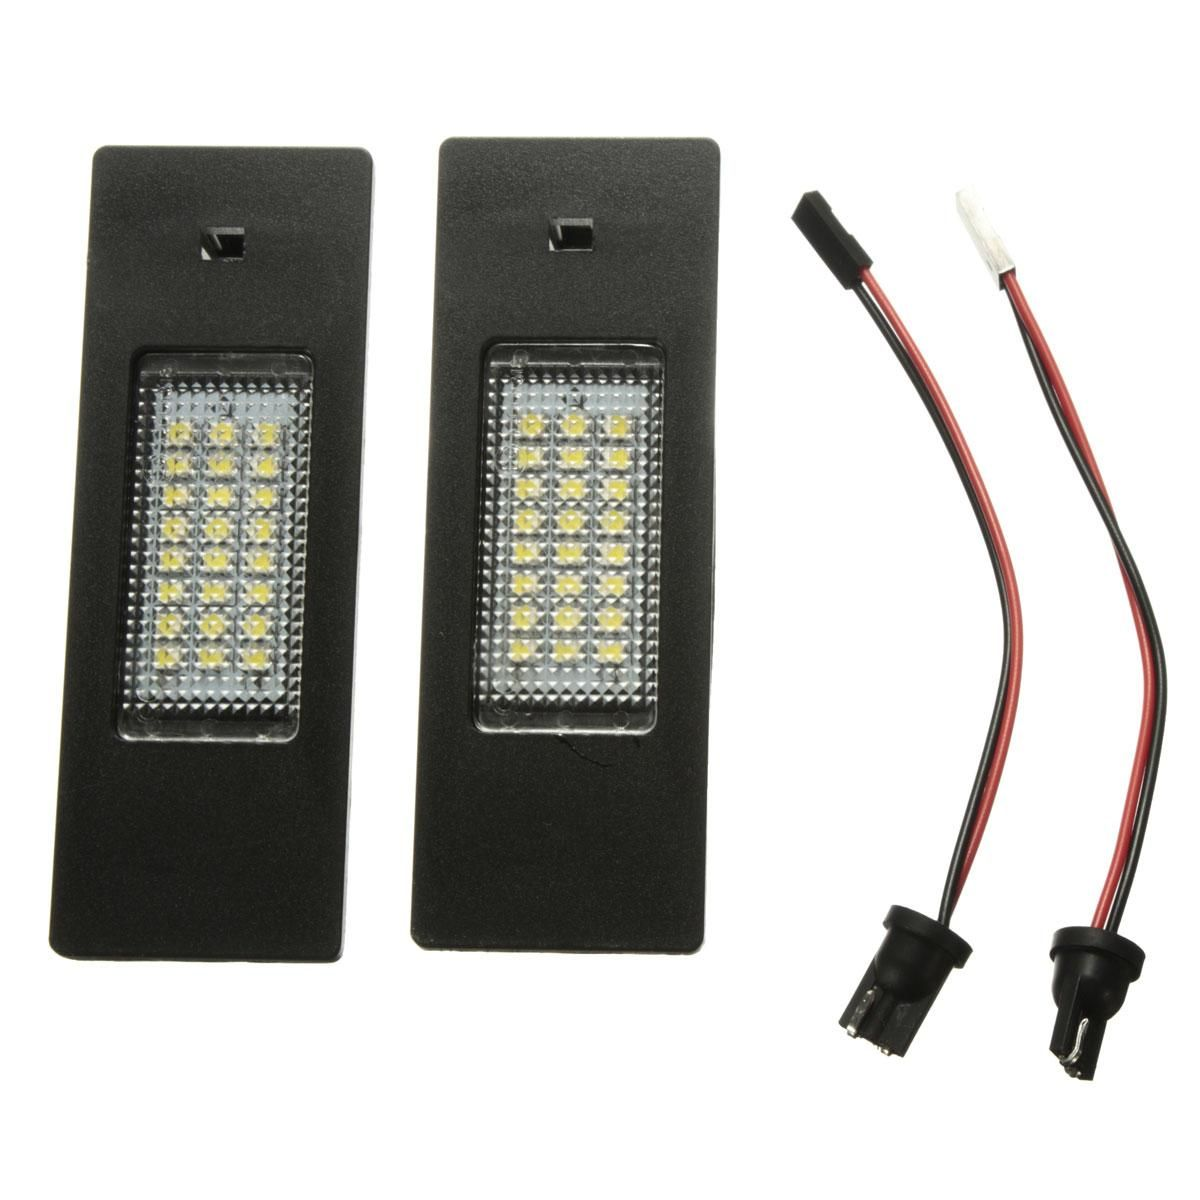 2pcs Led 24 Smd License Plate Light Number Lamp For Bmw E63 Wiring E81 E87 F06 F12 F20 Z4 Bulbs Car Styling Source 2099